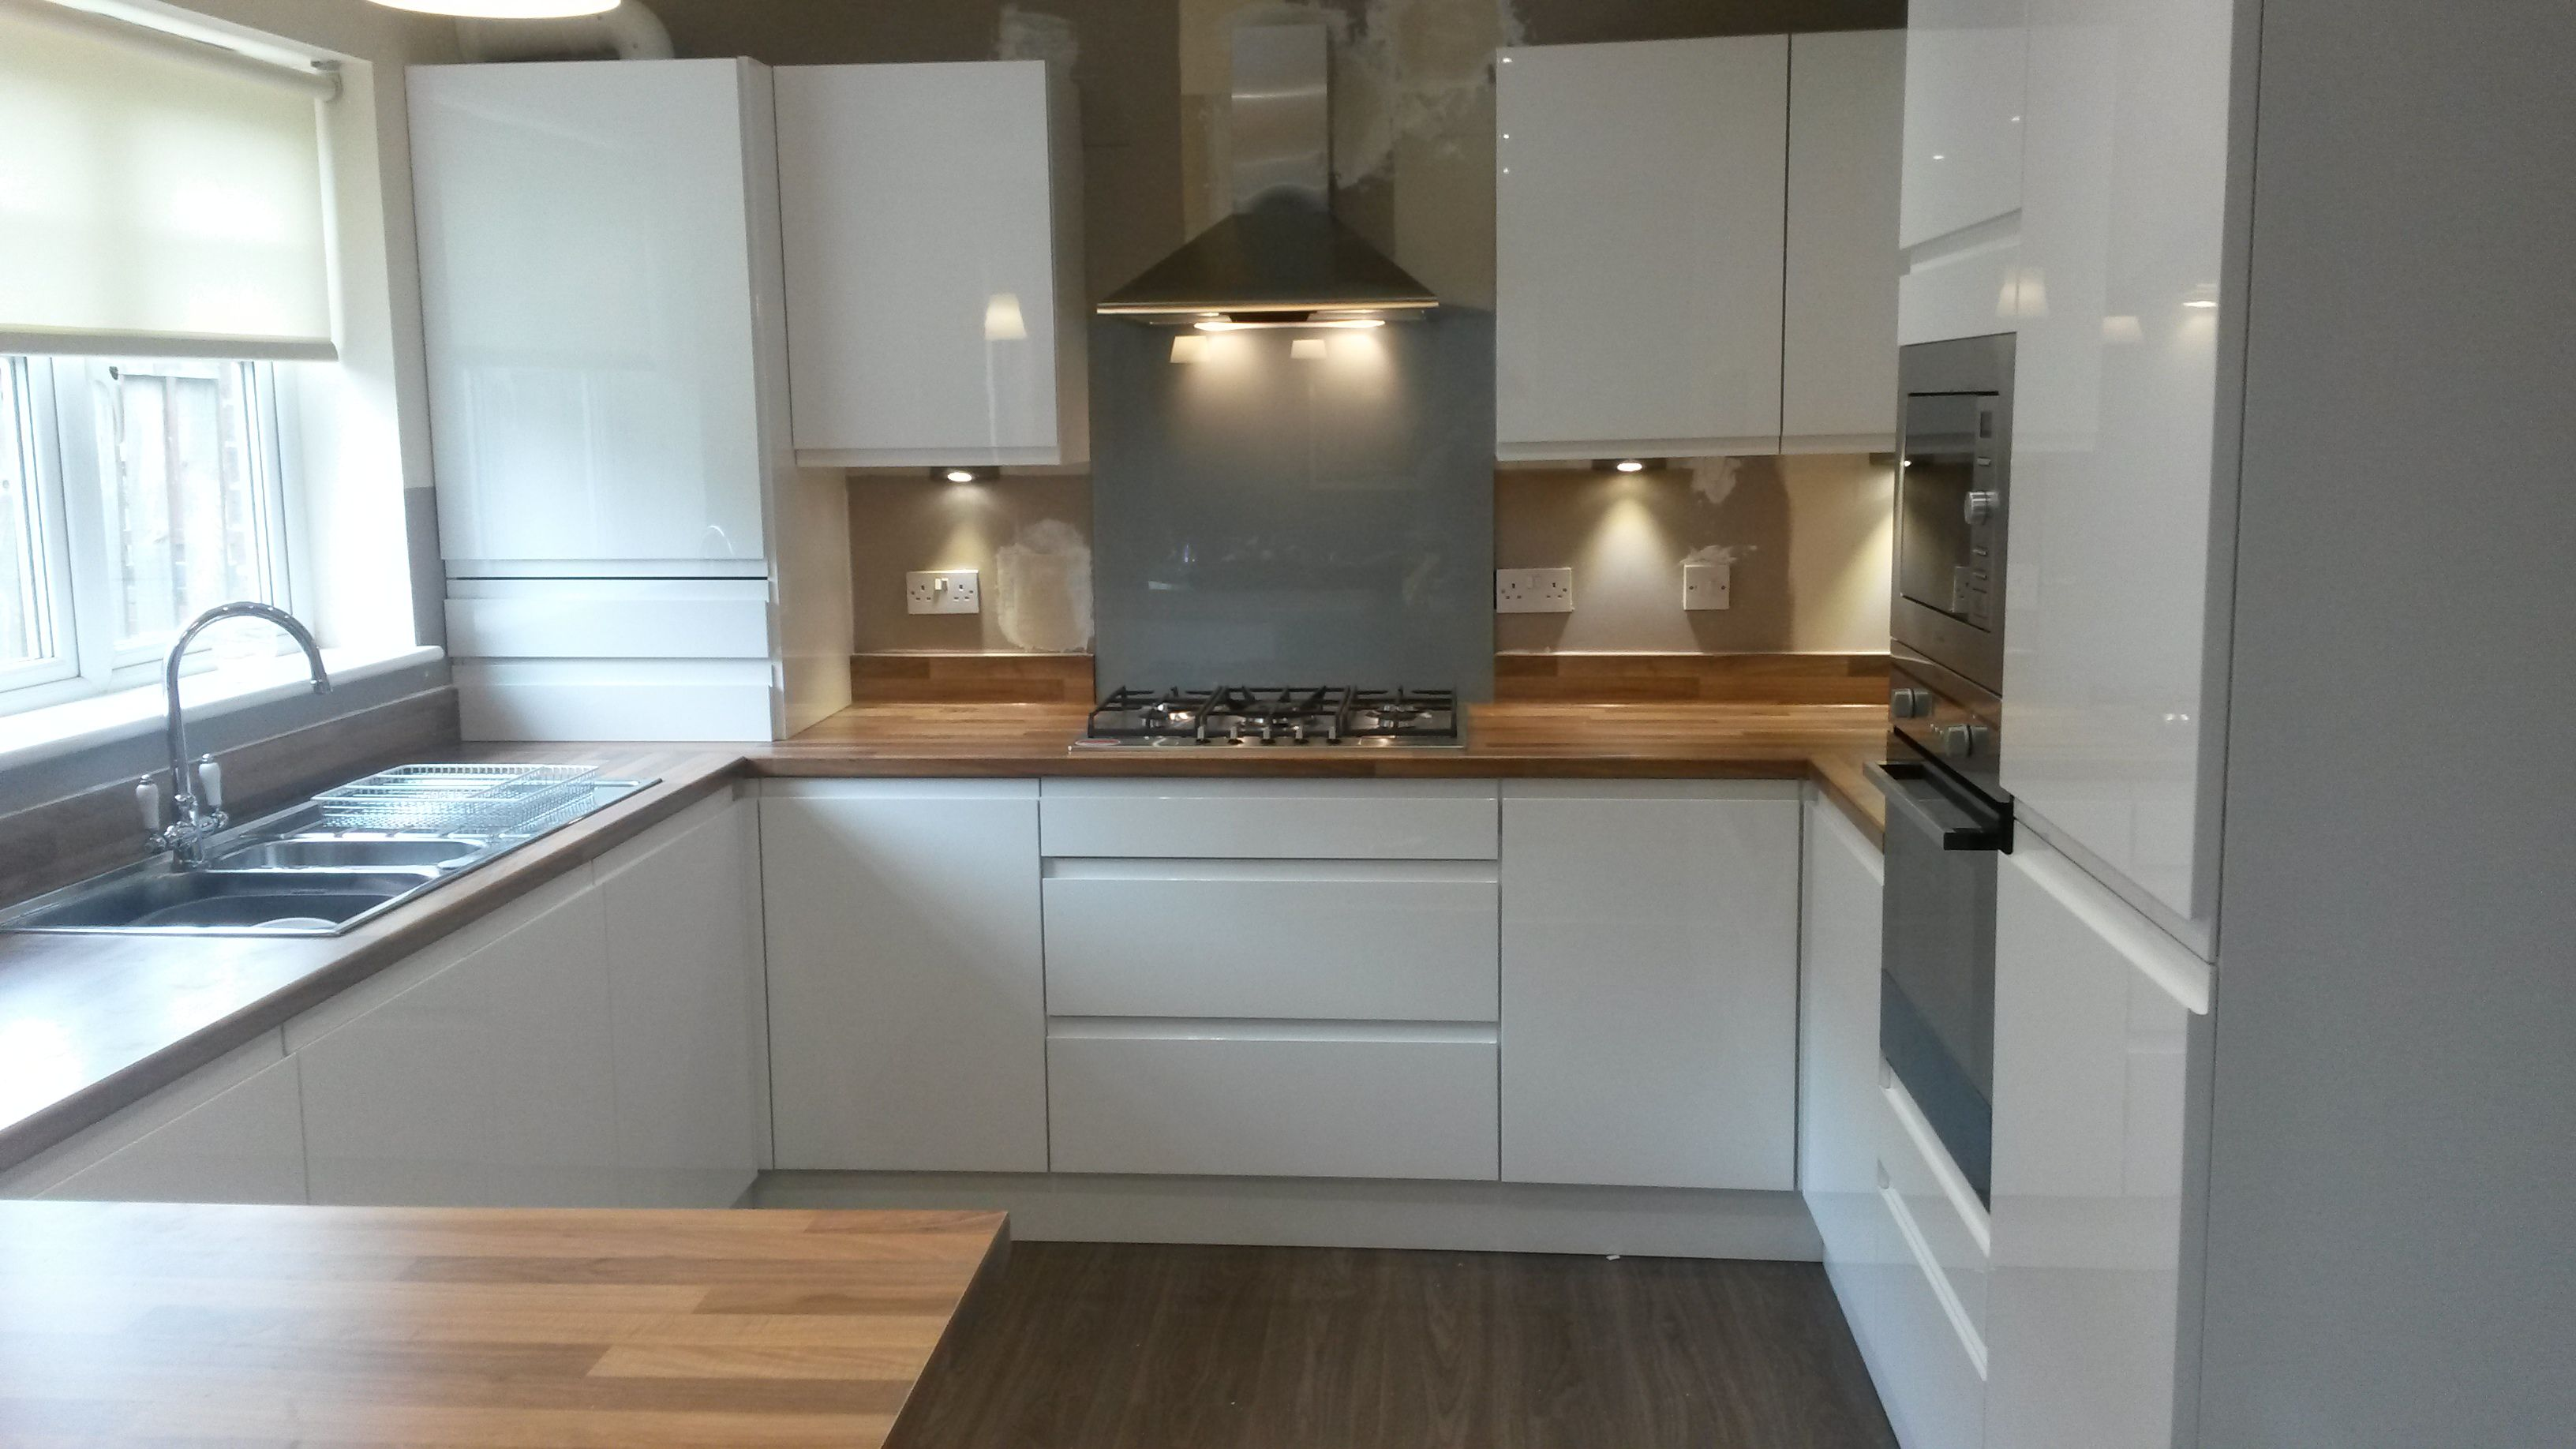 another worktop colour and floor option fro a recent installation | kitchen upgrades, kitchen